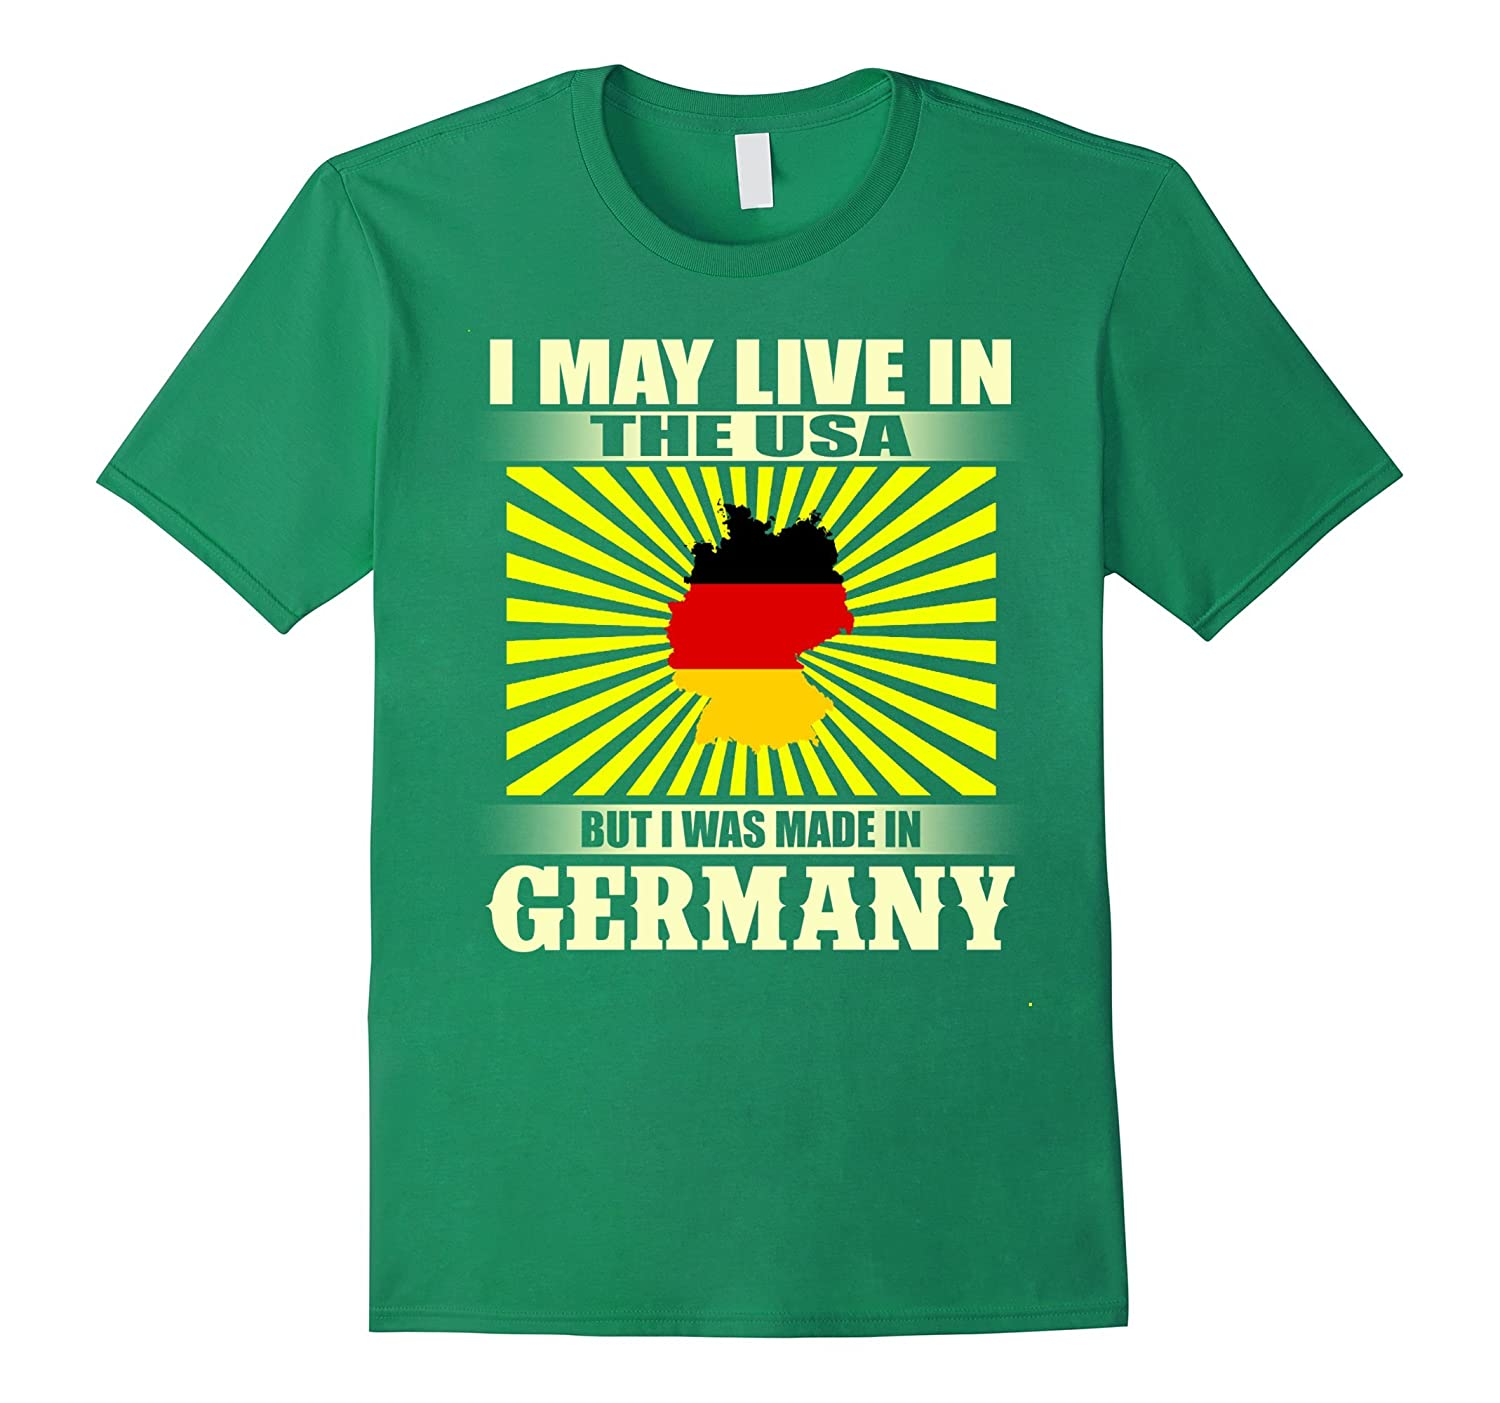 Live in USA made in GERMANY map t shirt-ANZ Kelly Usa Map on missouri city map, caldwell map, manor map, plano map, katy map, nacogdoches map, galveston map, temple map, lackland map, kingwood map, wichita falls map, iran map, weslaco map, granbury map, kelly new mexico, andrews afb map, schertz map, league city map, new braunfels map, port isabel map,